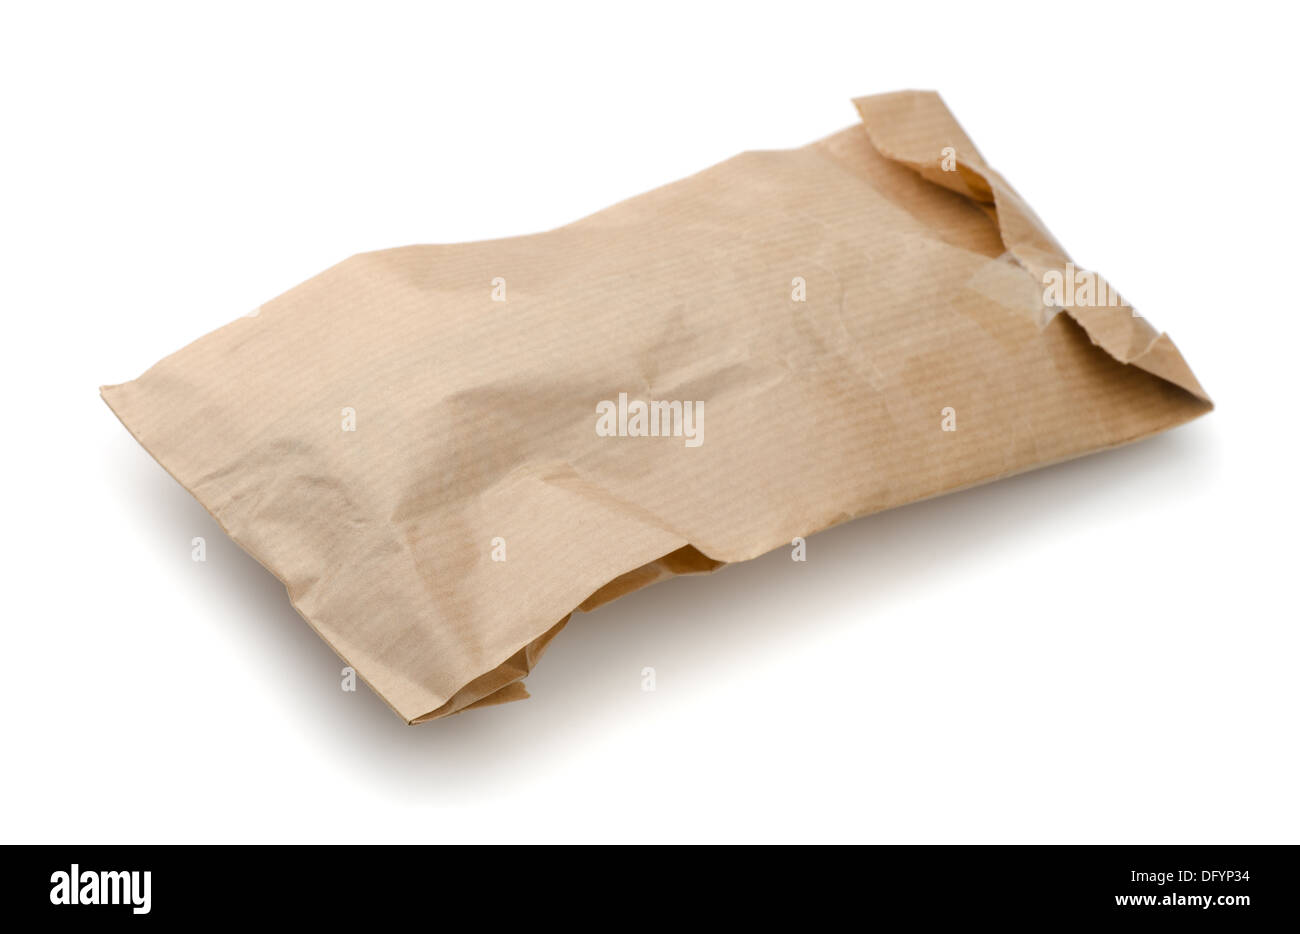 Closed crumpled paper package isolated on white - Stock Image